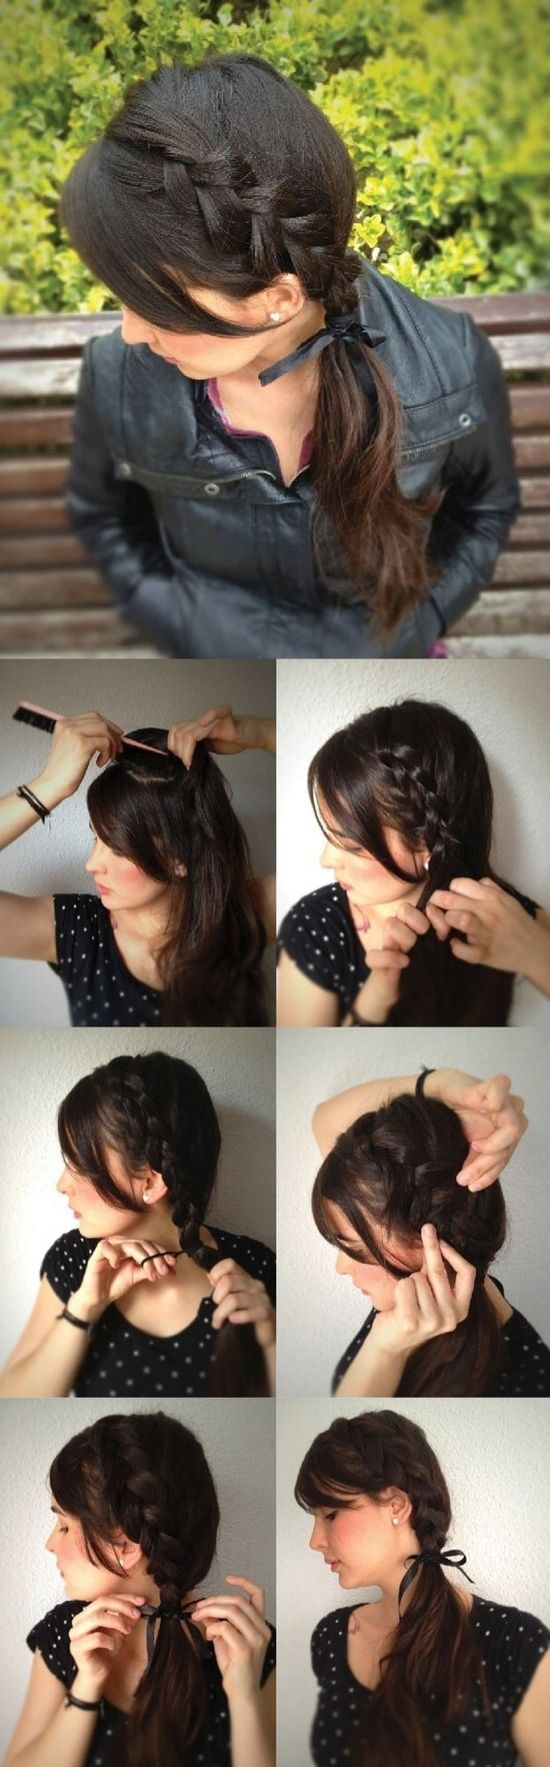 TRY THIS: A pretty braid that wont weigh you down.